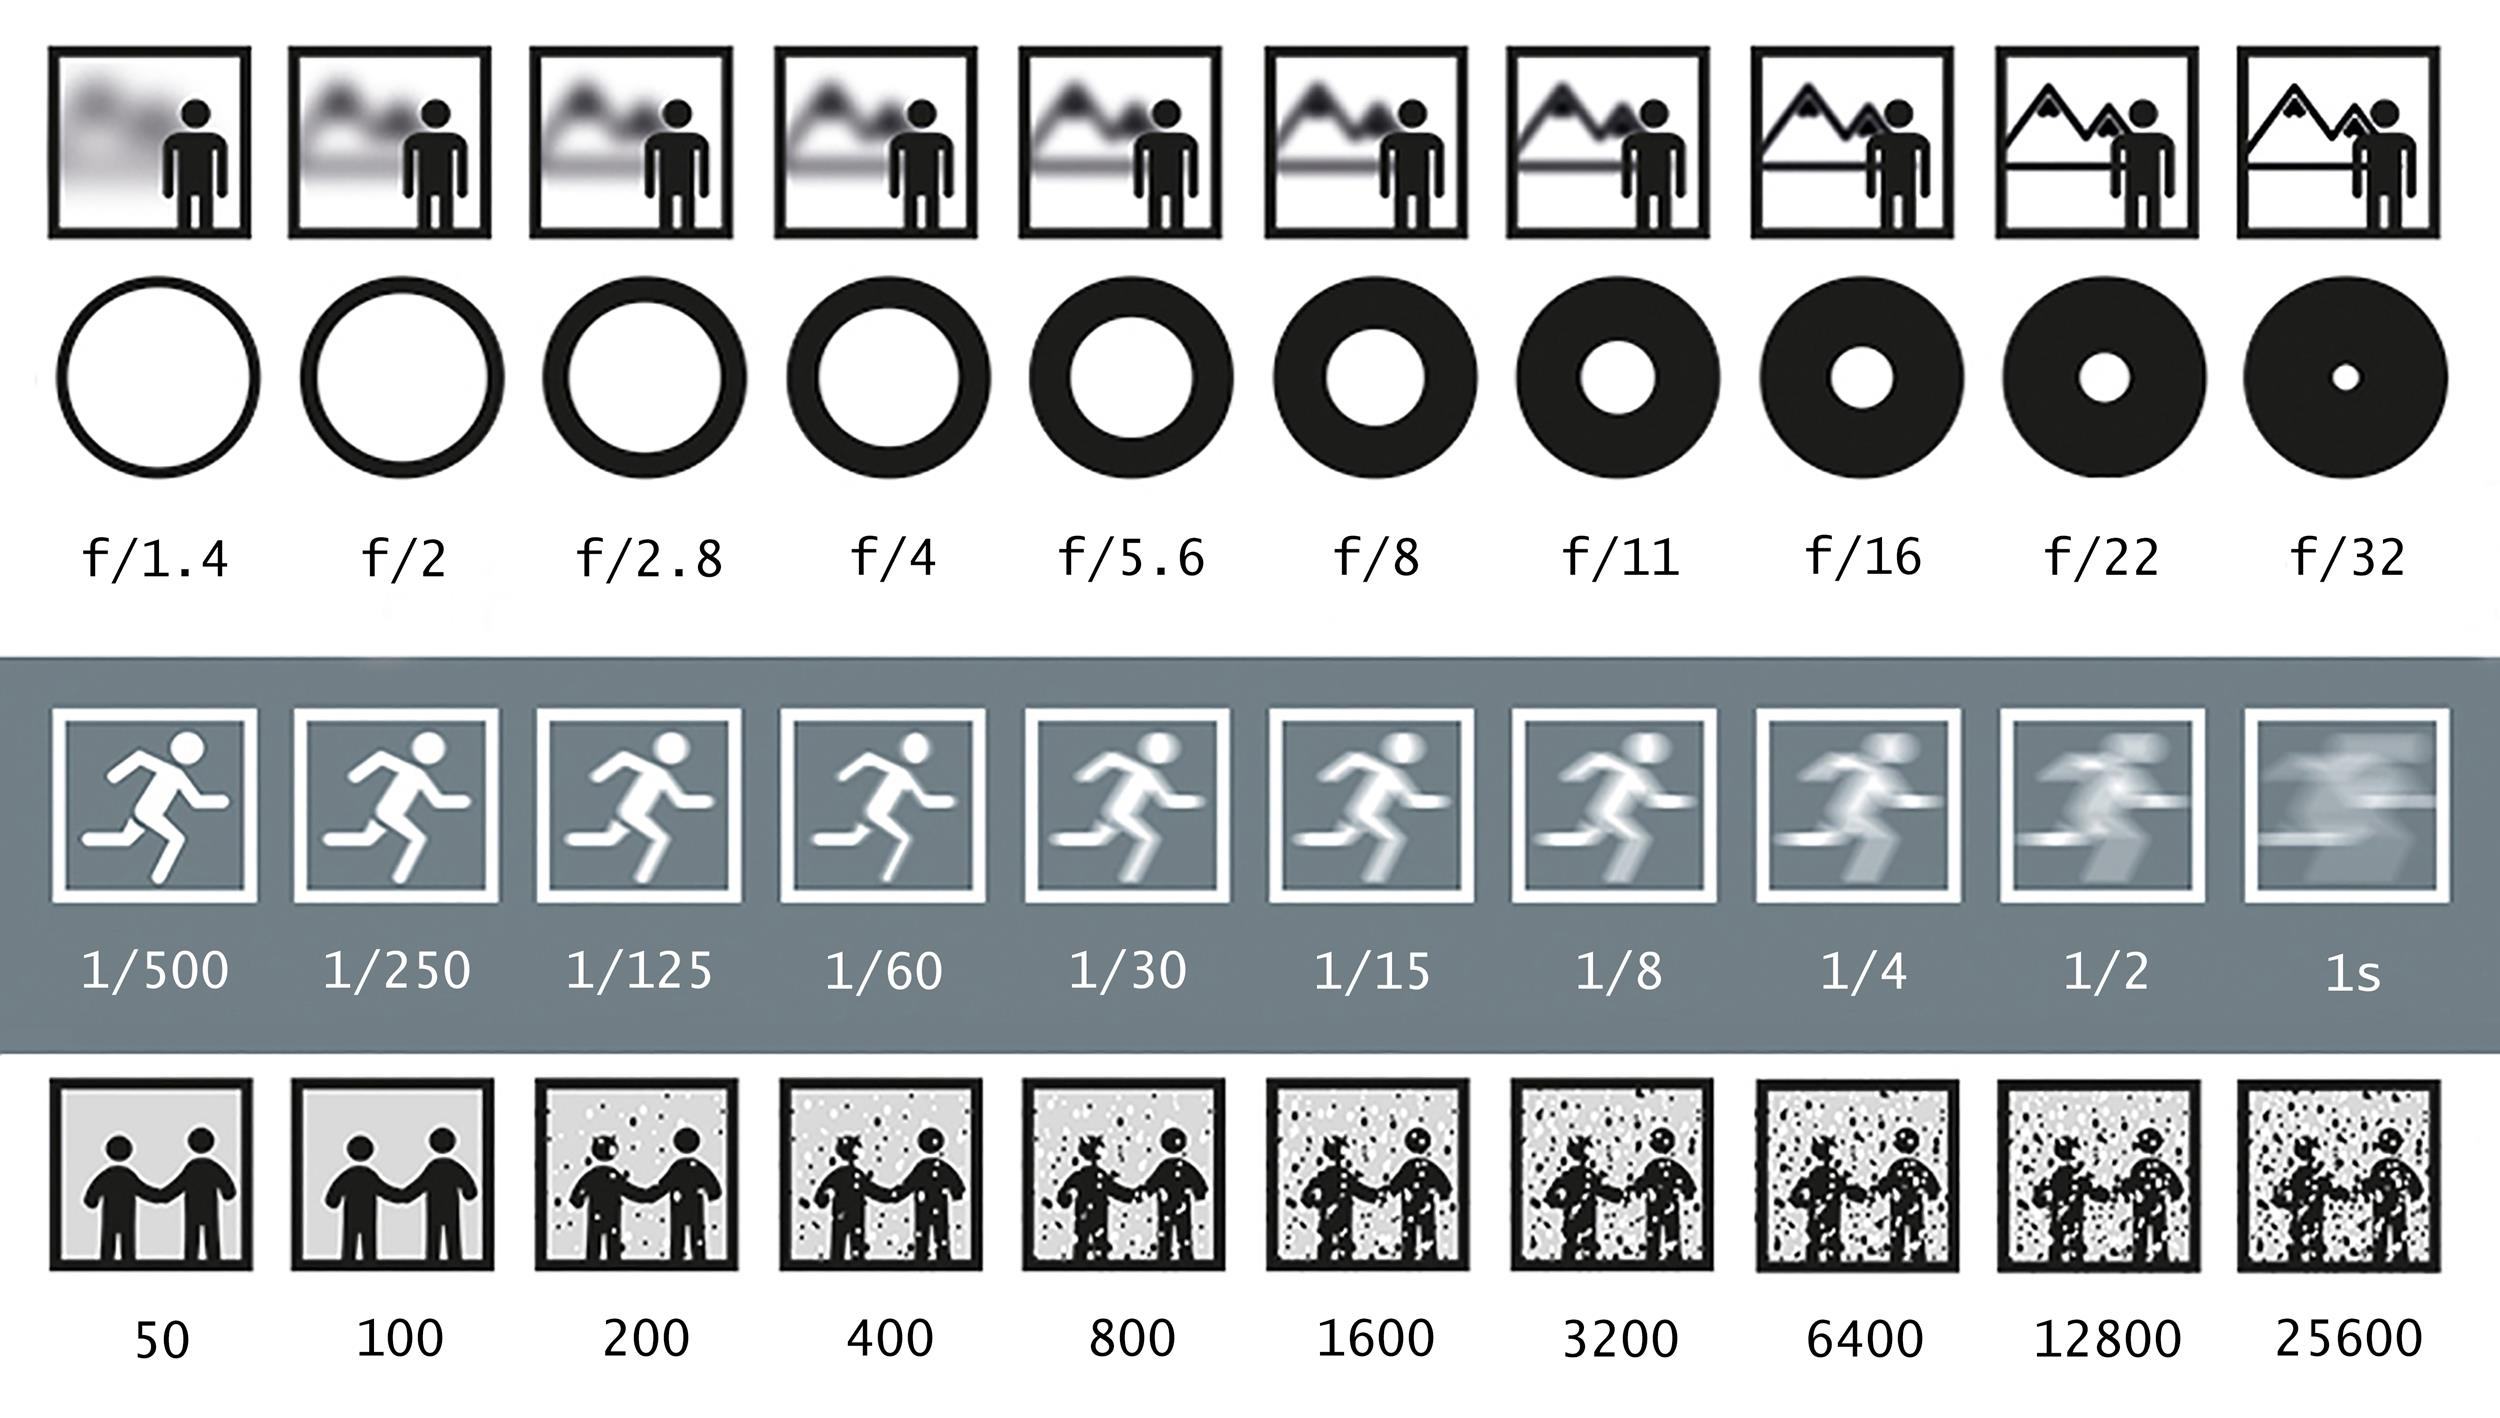 The beginner's guide to the exposure triangle